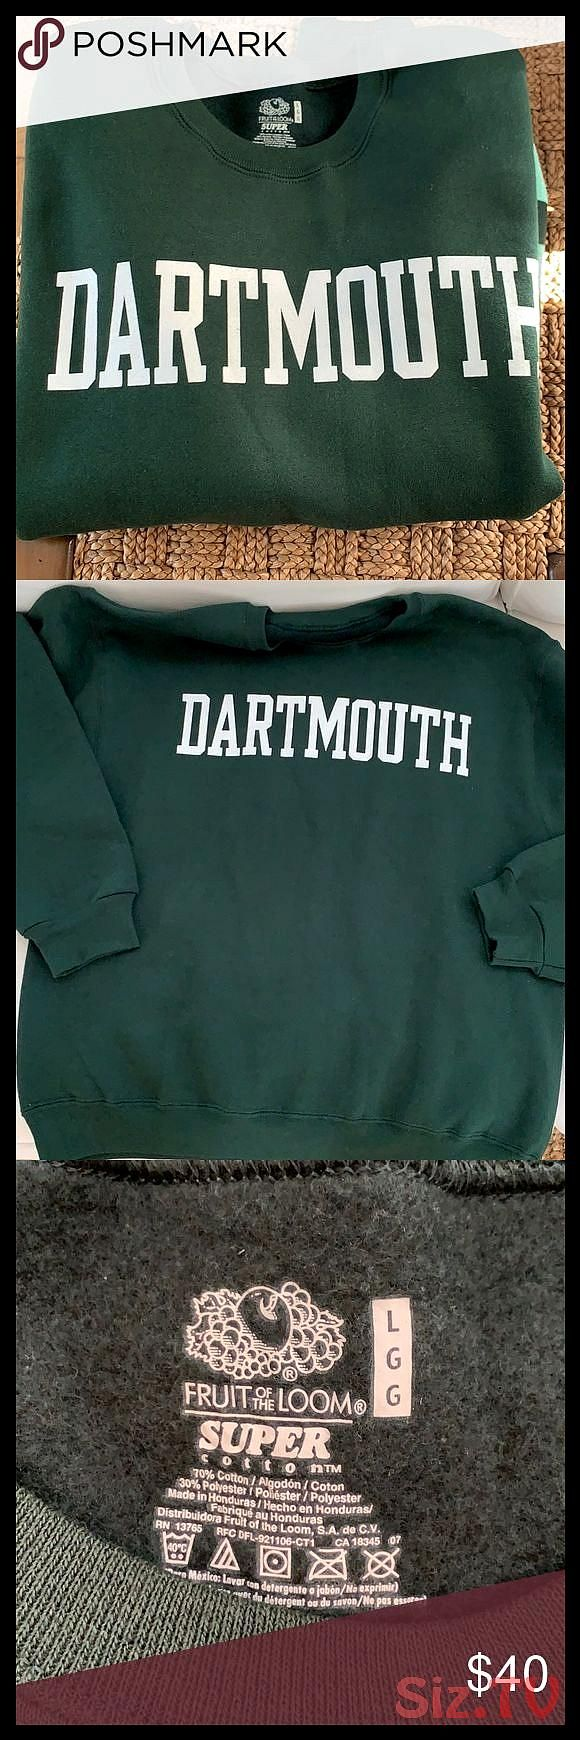 Dartmouth College Crew Sweatshirt Gender Neutral This Is A Beautiful Size Large Hunter Green Dartmouth Sweatshirt Sweatshirts Crew Sweatshirts Sweatshirt Tops [ 1740 x 580 Pixel ]